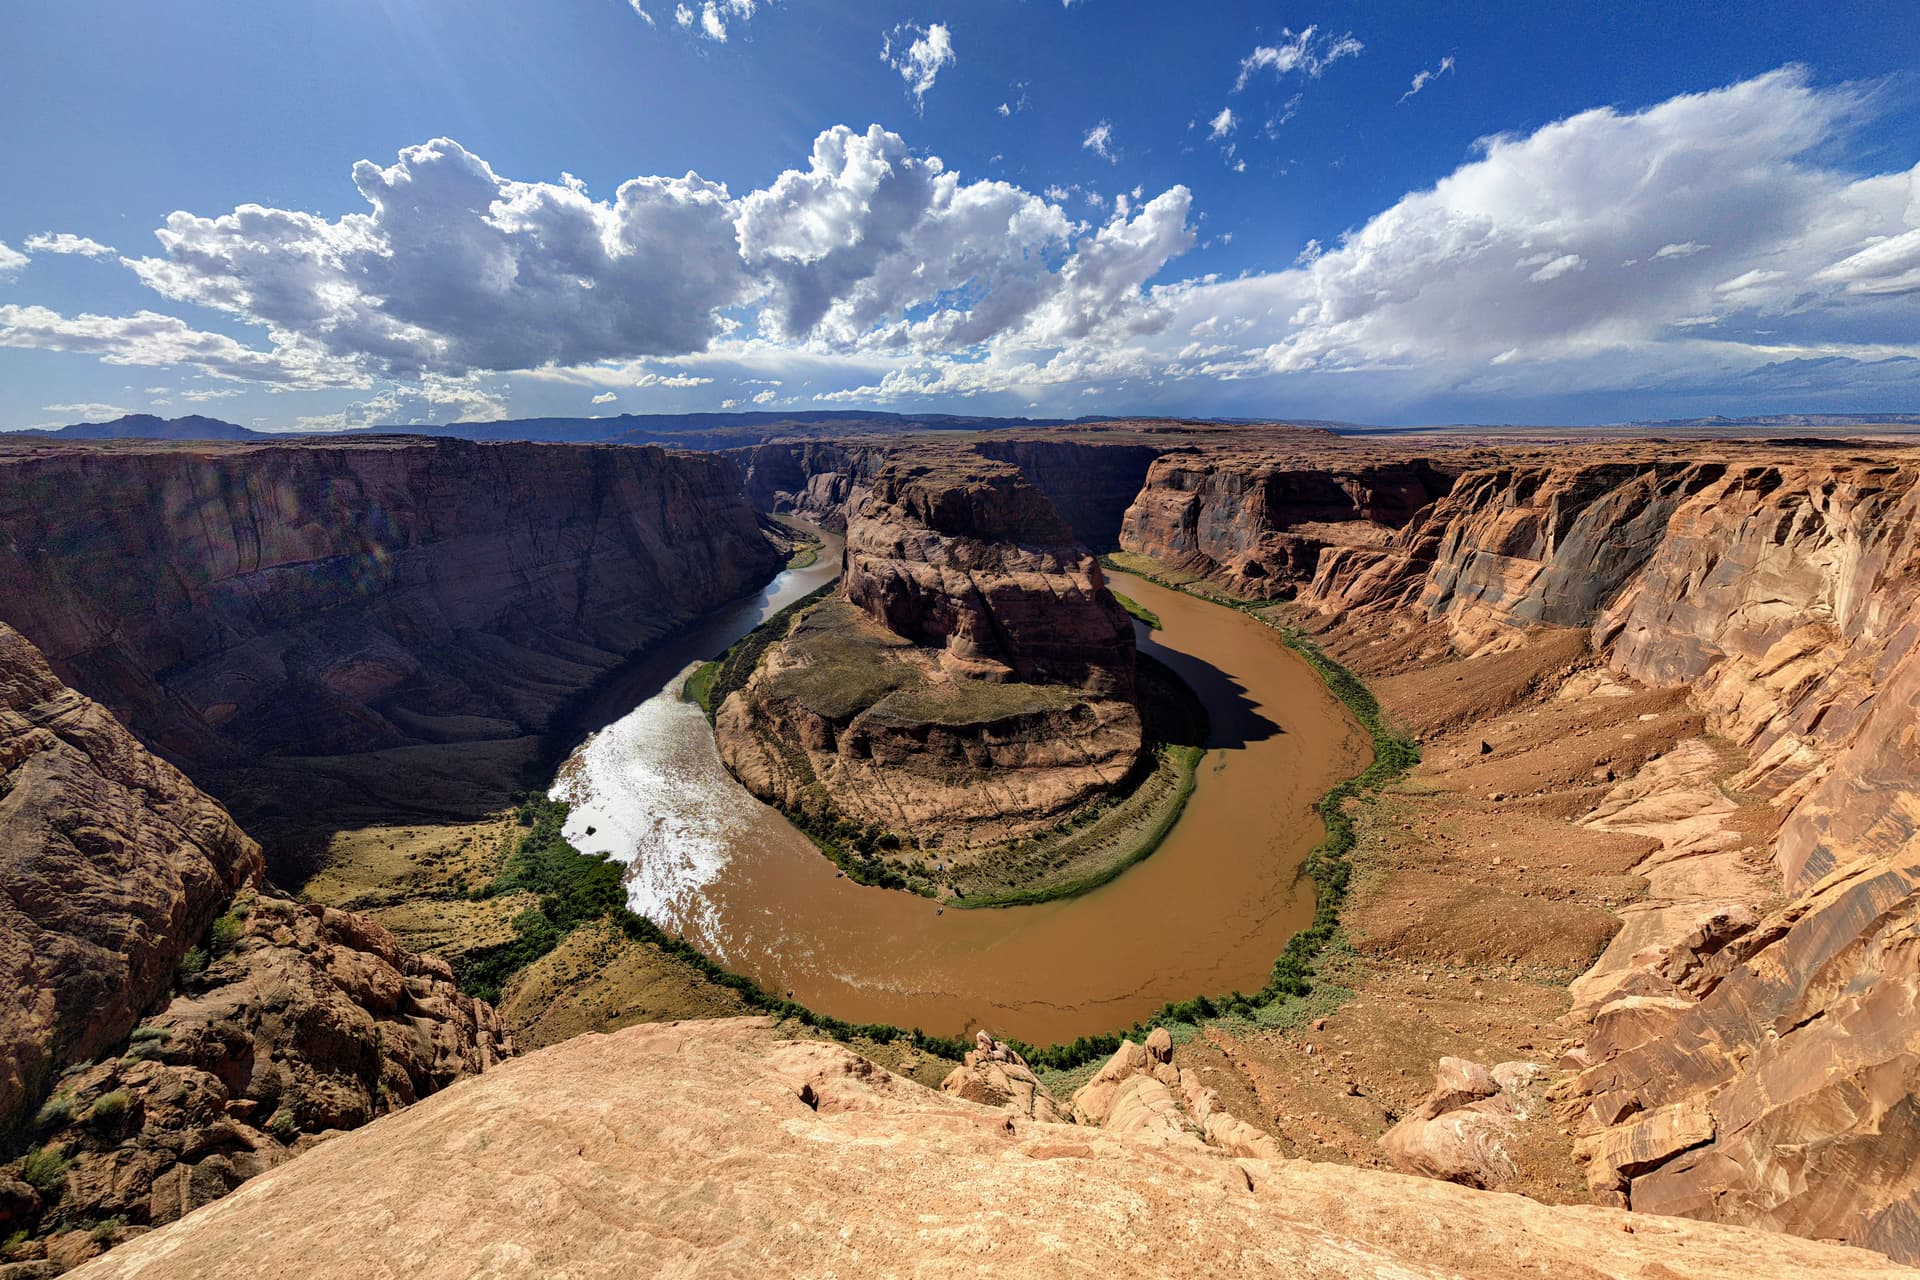 A wide-angle shot of the iconic Horseshoe Bend in the Colorado River (technically within the Grand Canyon National Park, as the park extends from the rim wall to the River all the way to the Glen Canyon Dam).